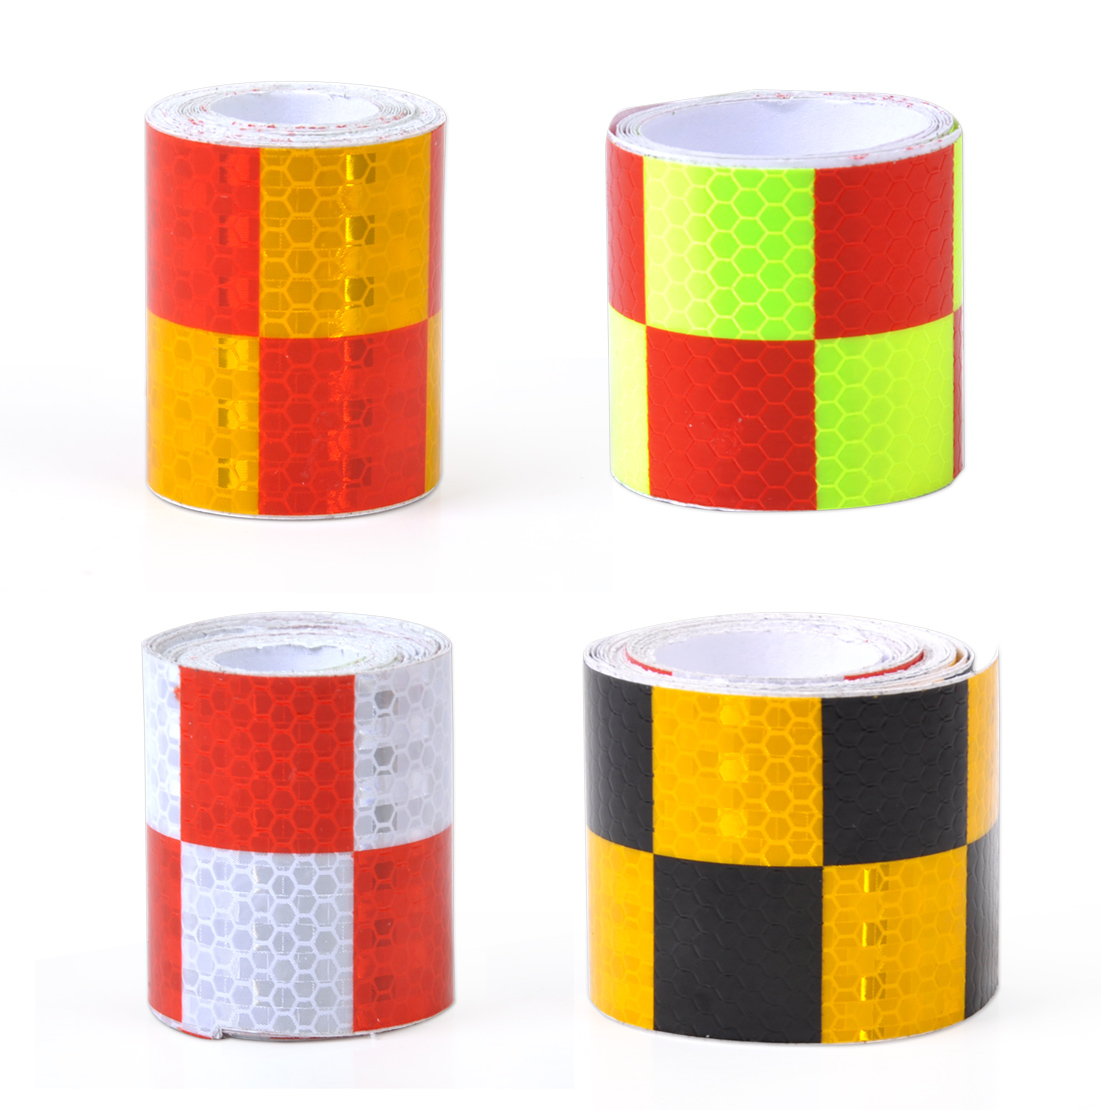 2 Quot X118 Quot Chequer Reflective Safety Warning Conspicuity Tape